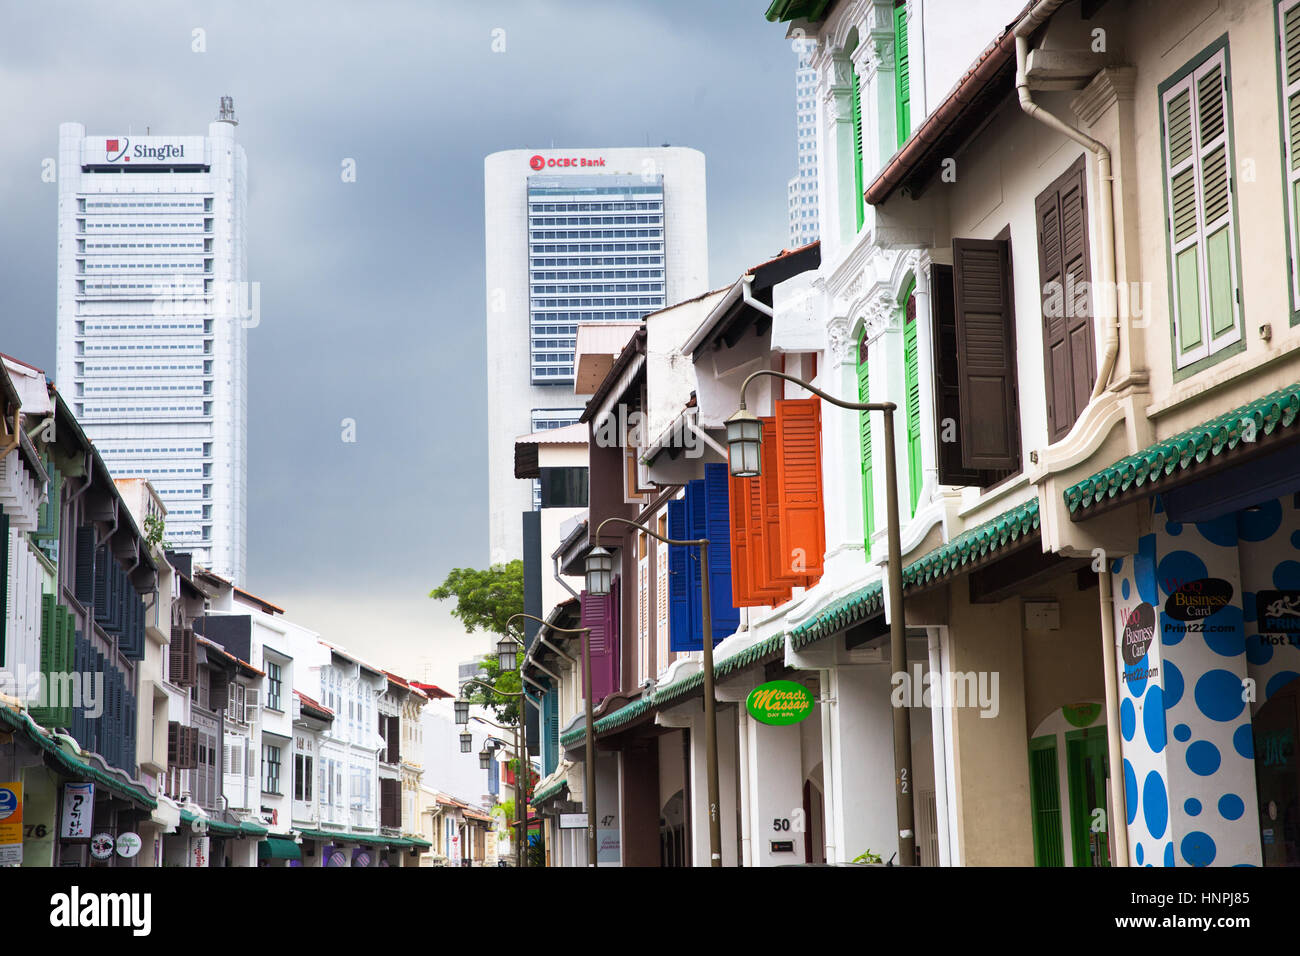 Singapore - July 11, 2013: Daytime view of the historical buildings in Chinatown district of Singapore with modern - Stock Image